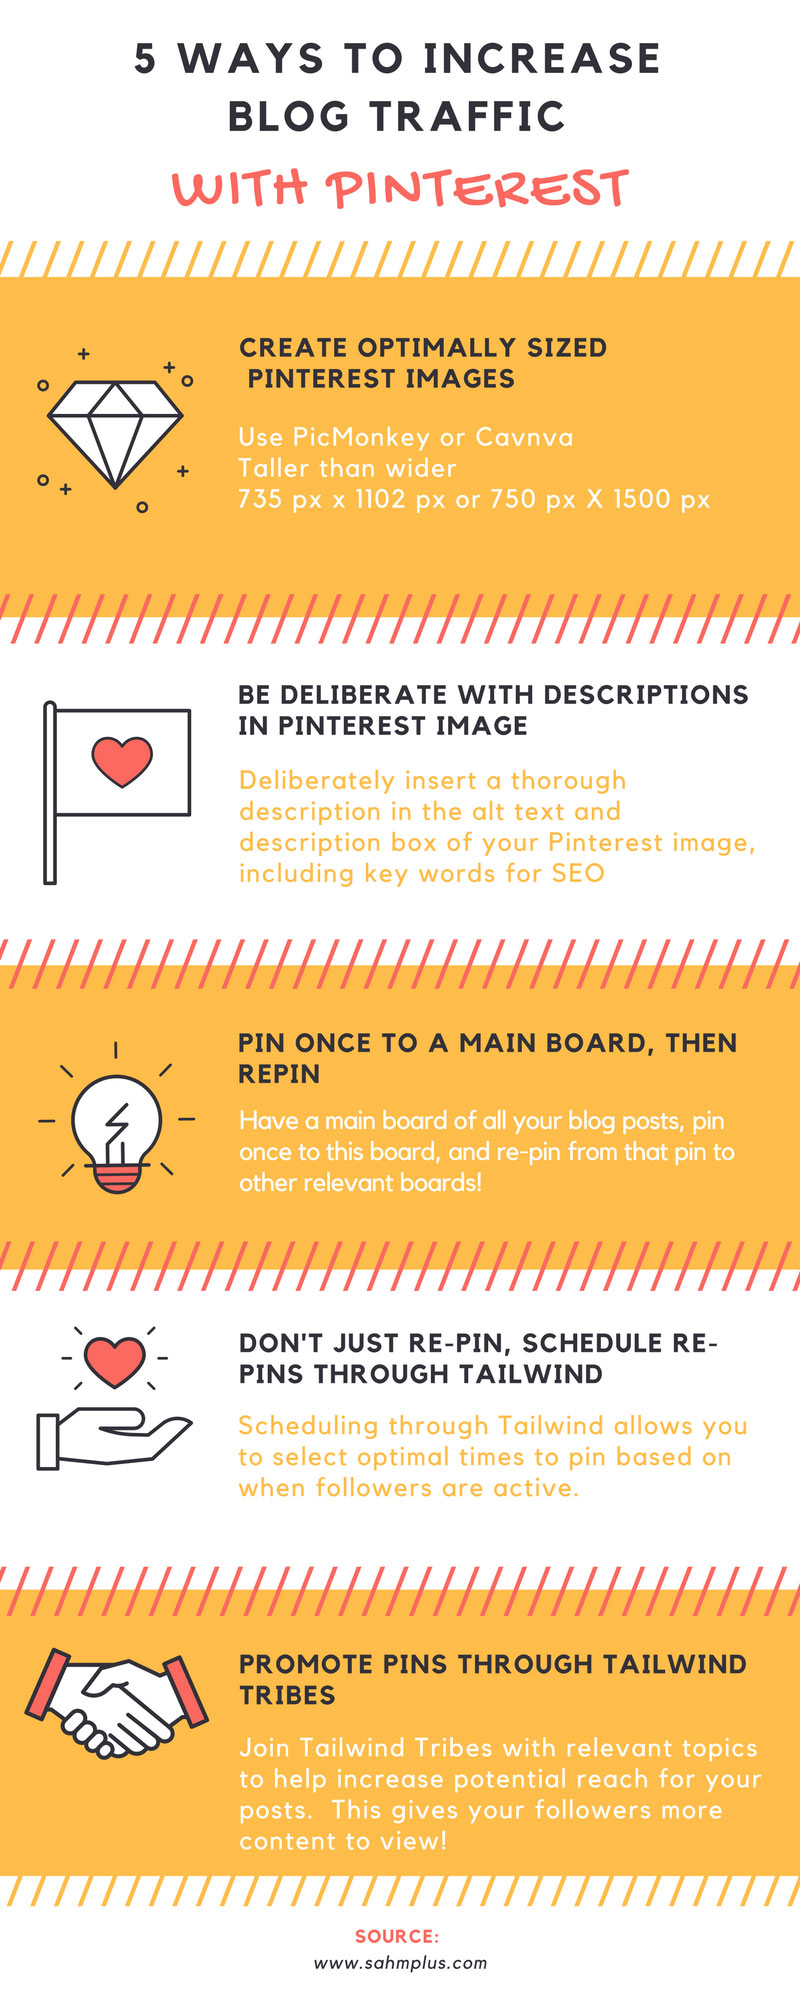 Increase blog traffic with Pinterest